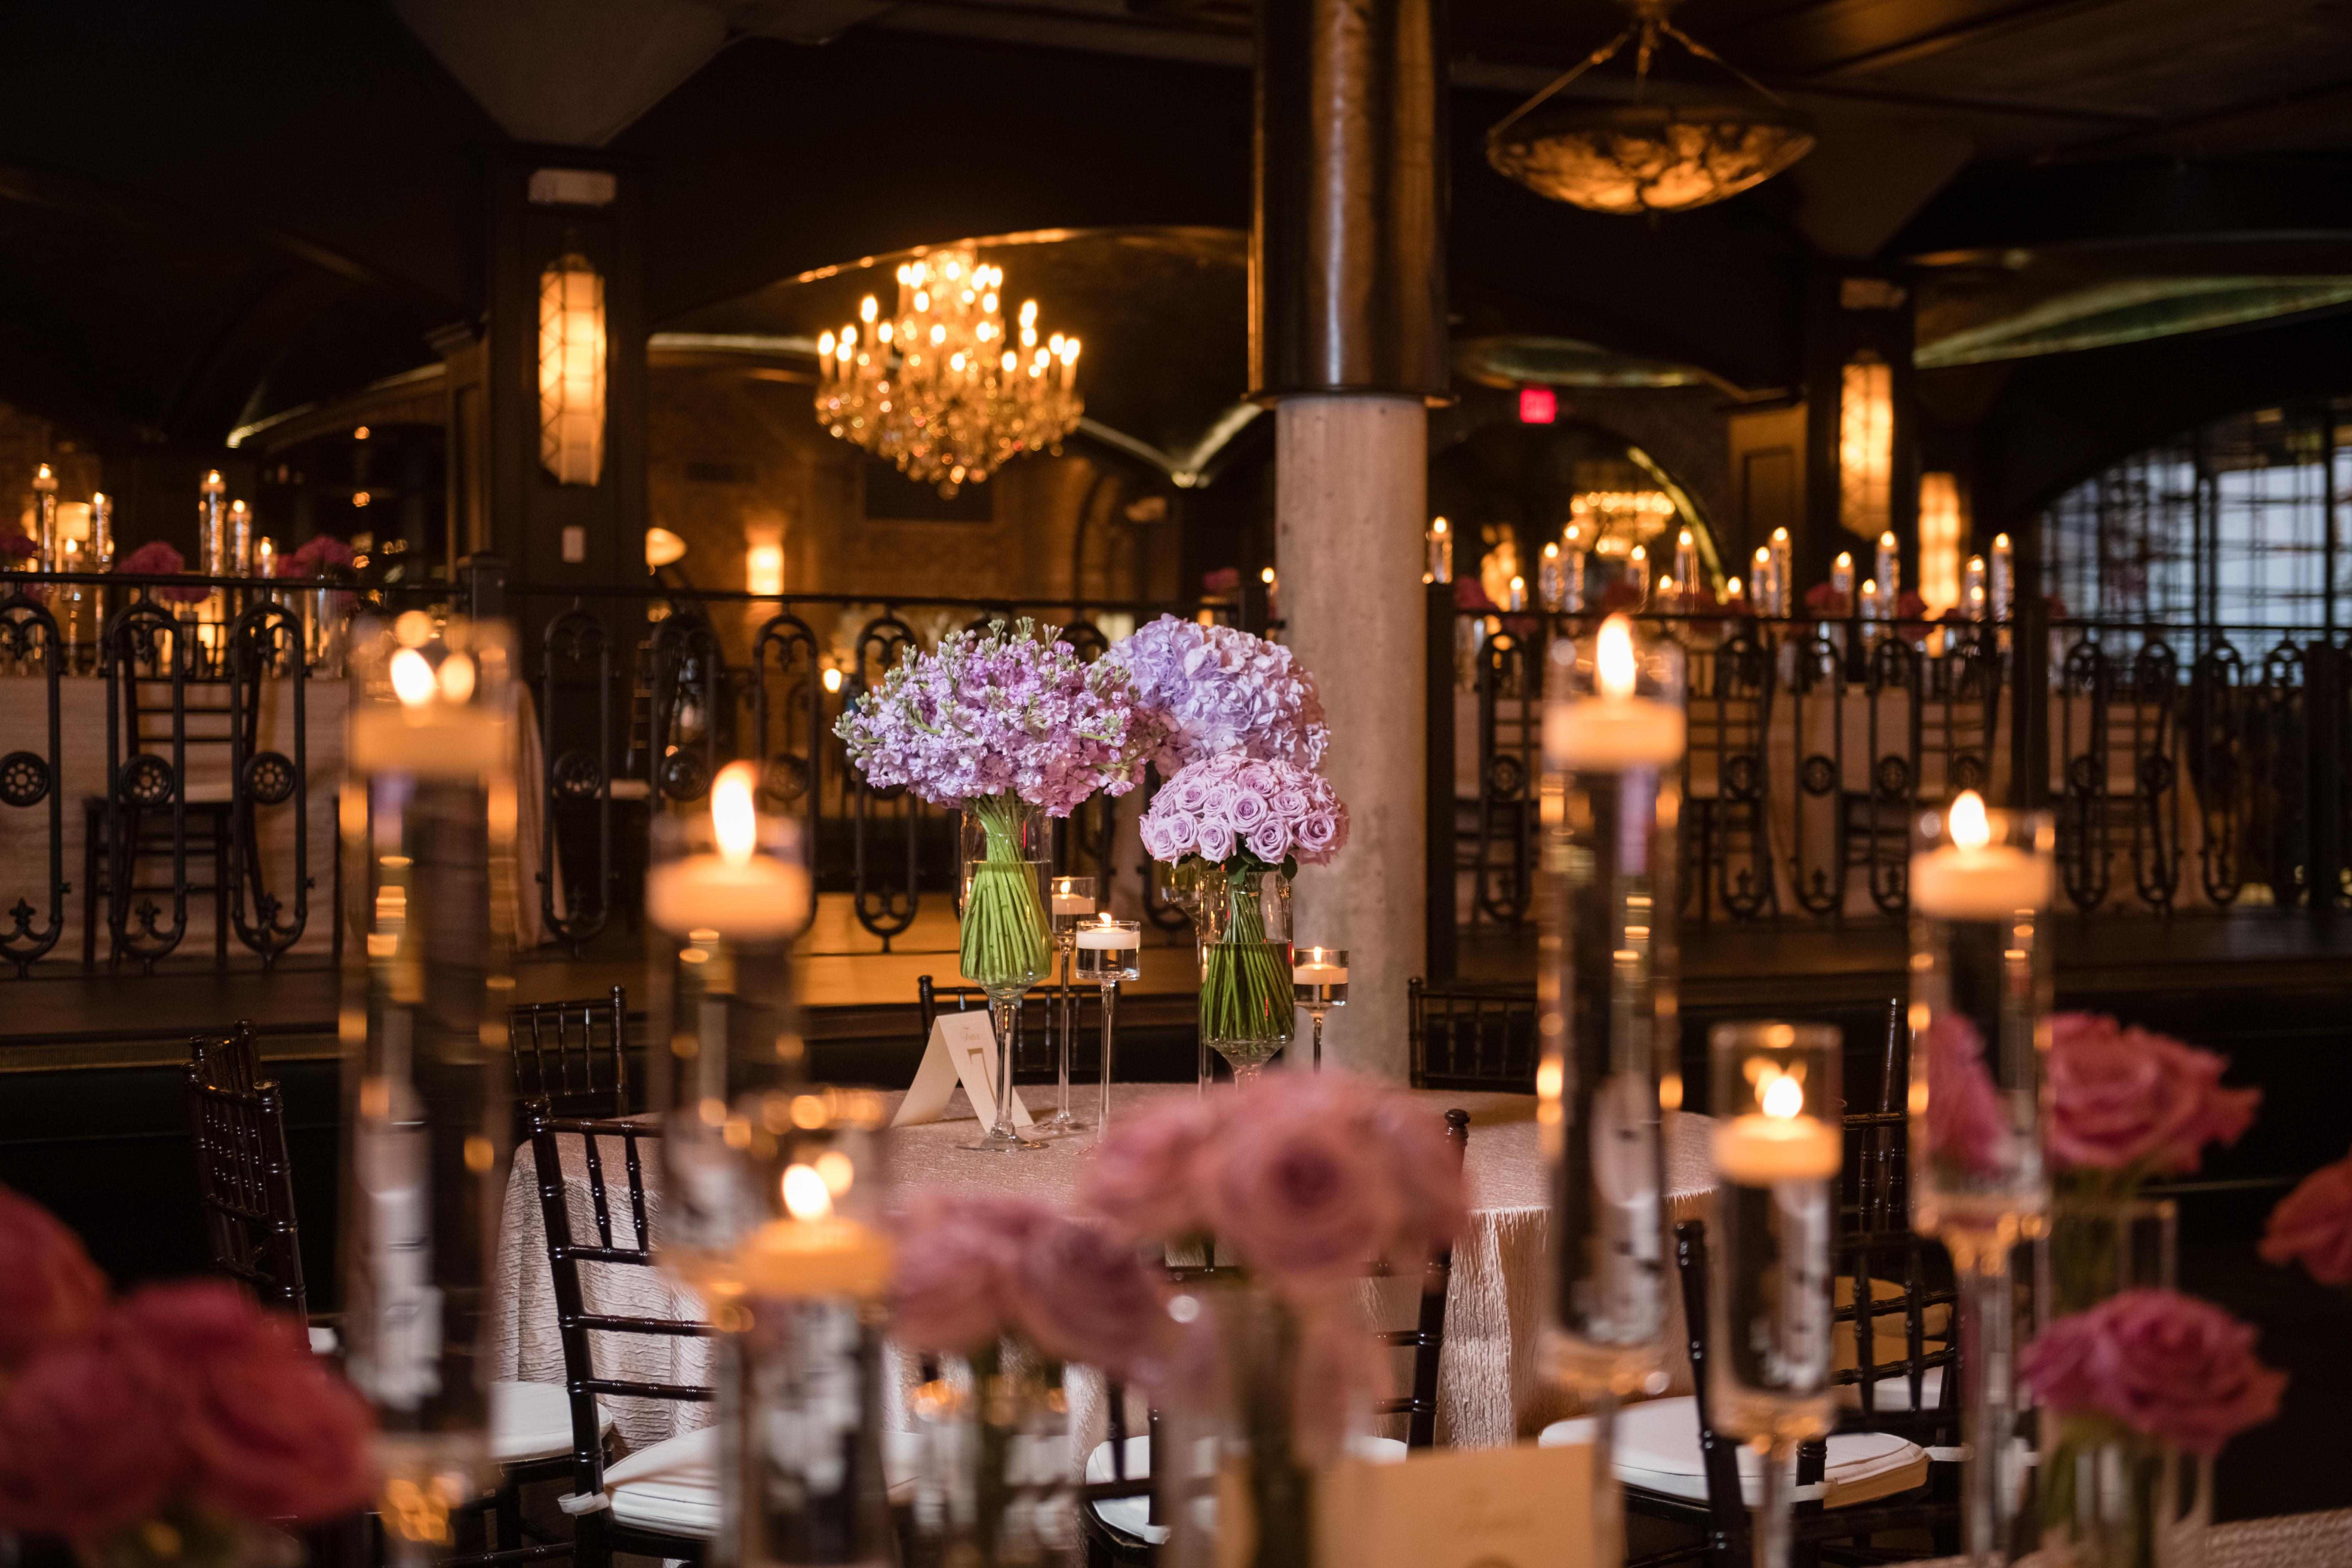 Long tables are lined with centerpiece vases of purple flowers and candles.